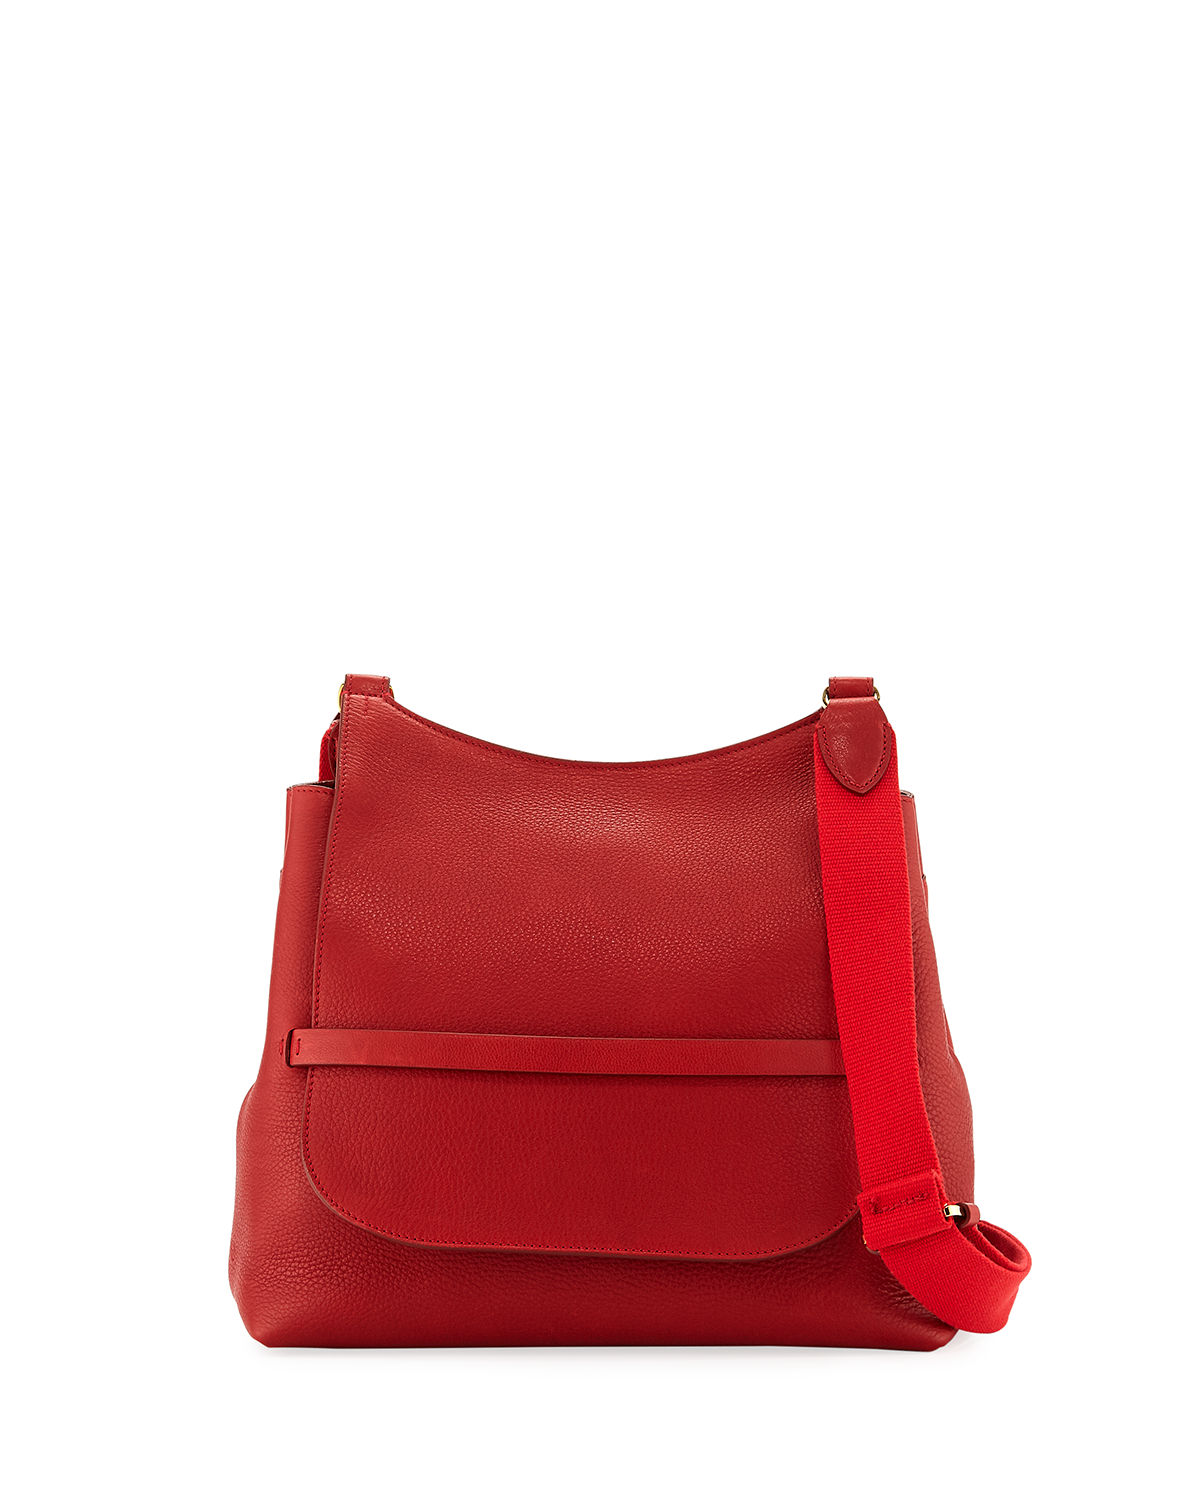 Sideby Grained Leather Shoulder Bag